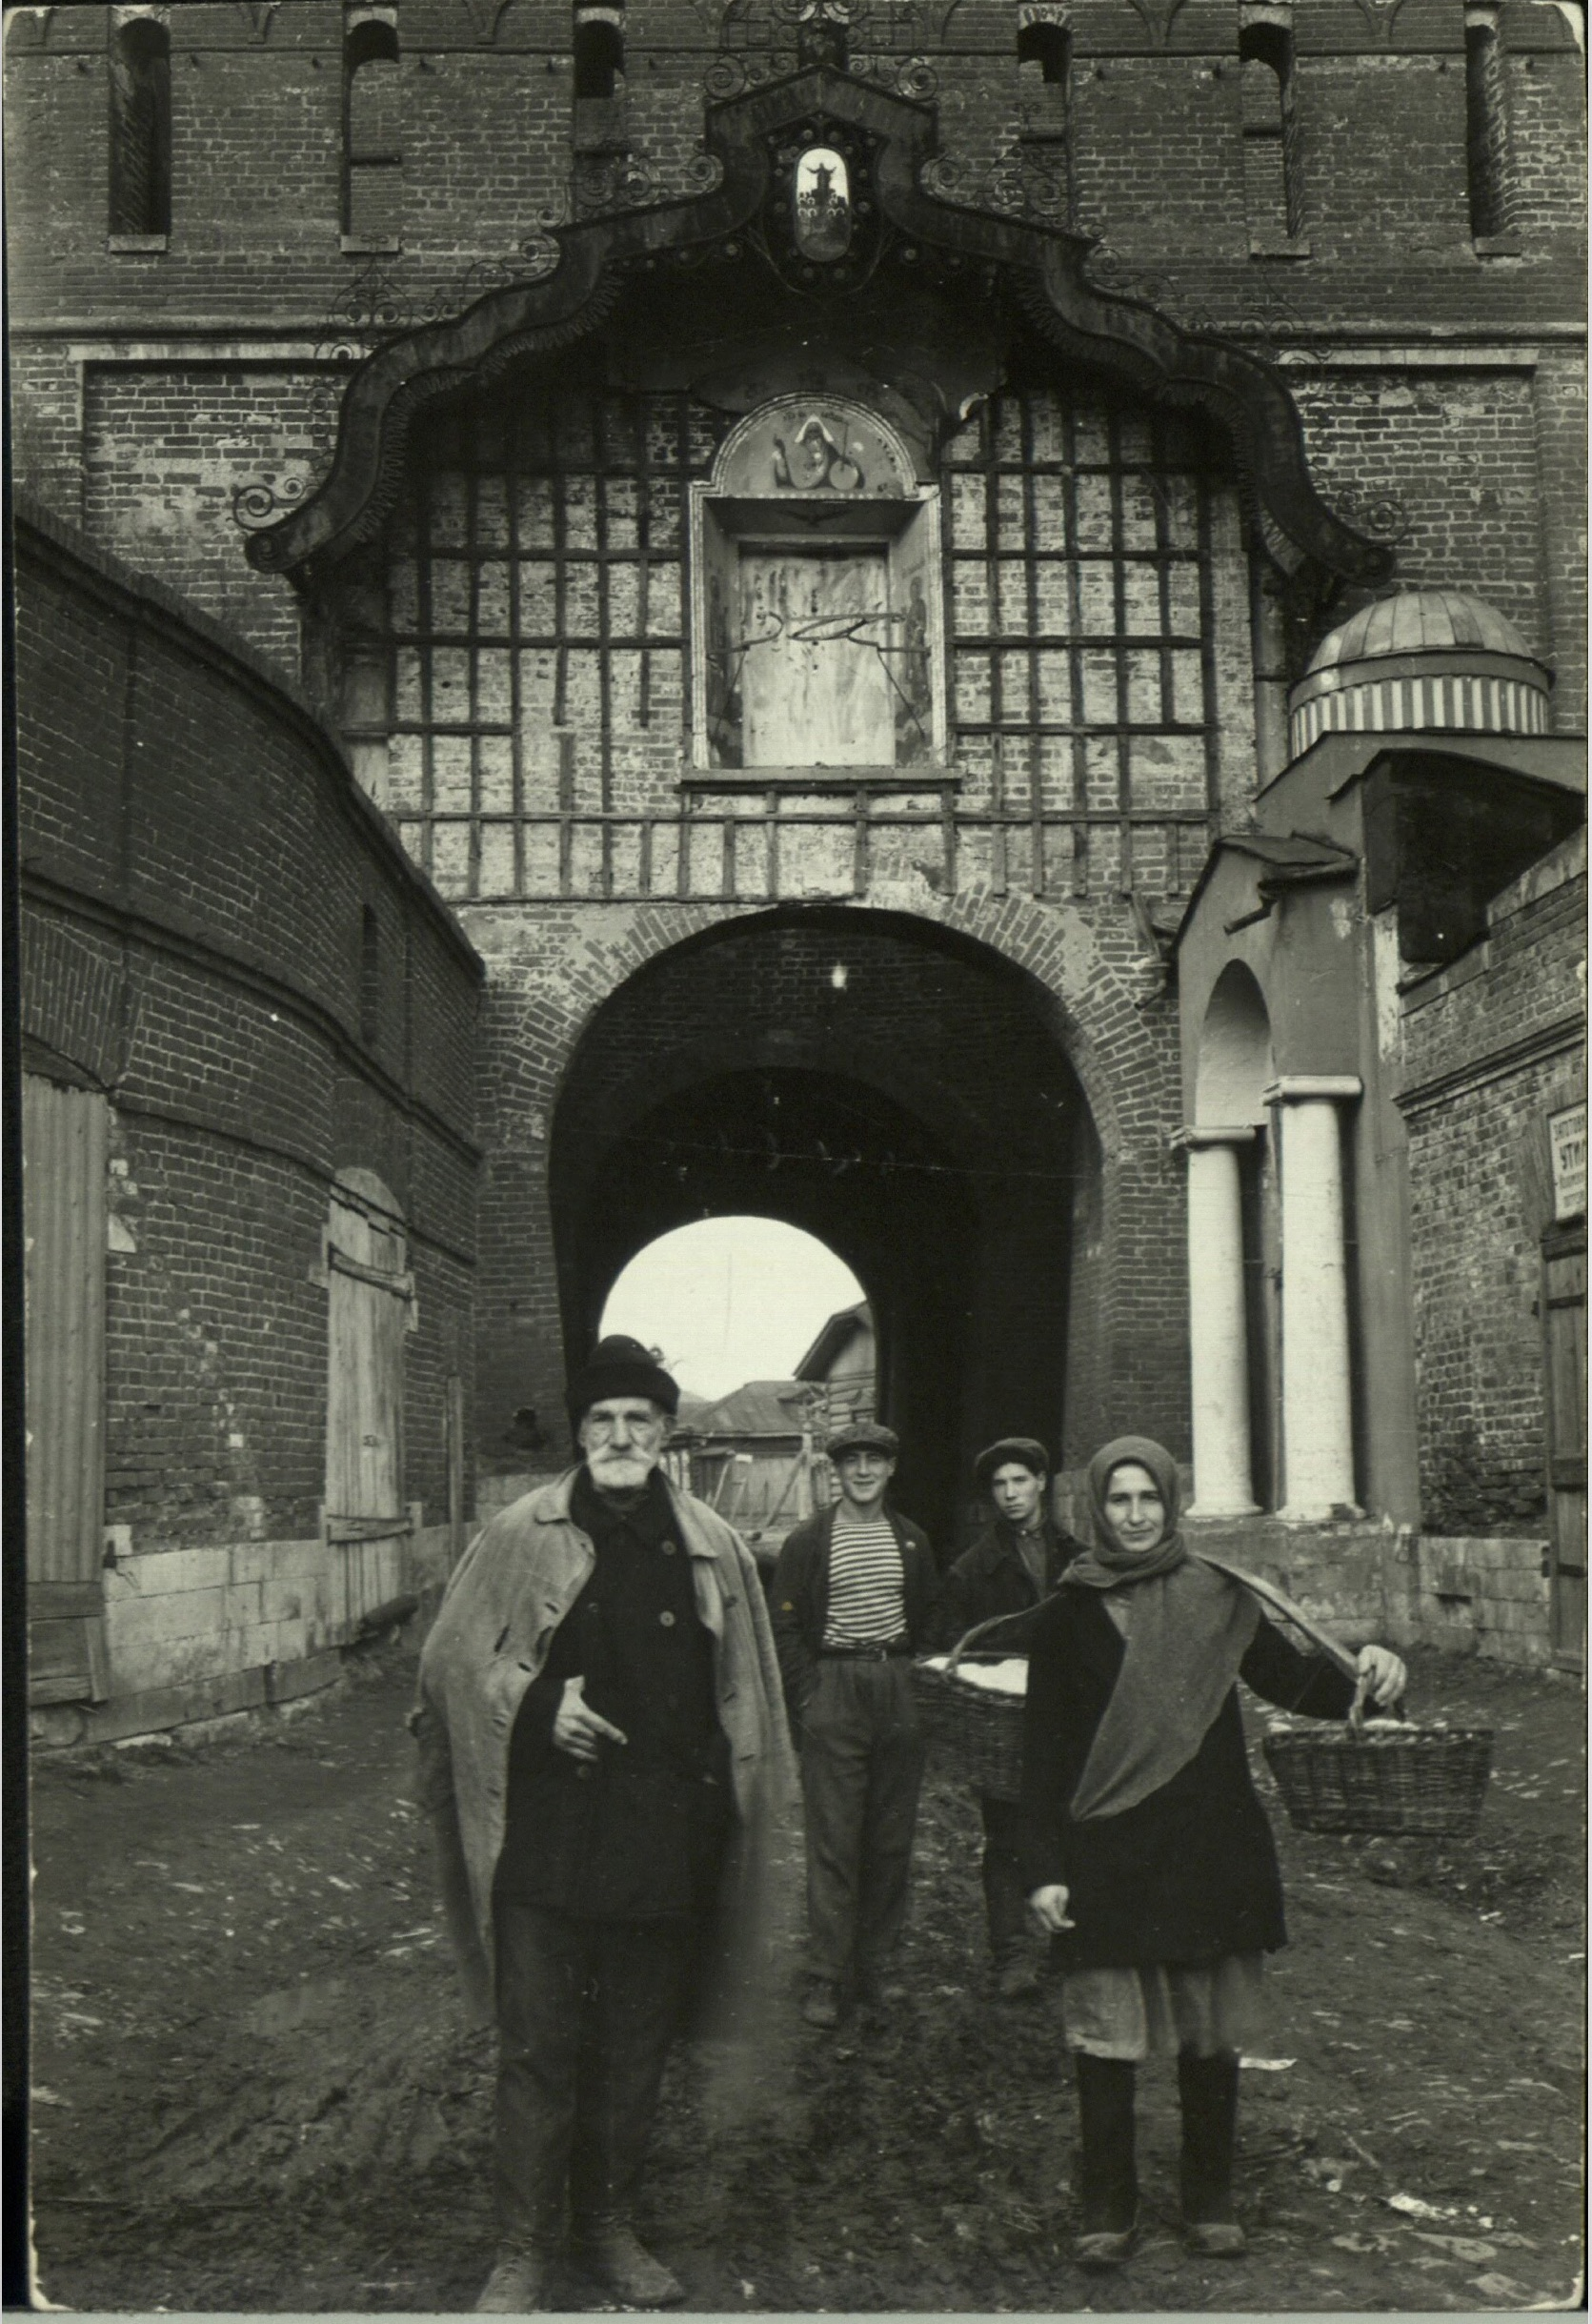 Margaret Bourke-White, Russian peasants posing in front of open gateway arch leading into the city (Kolomna, 1931)